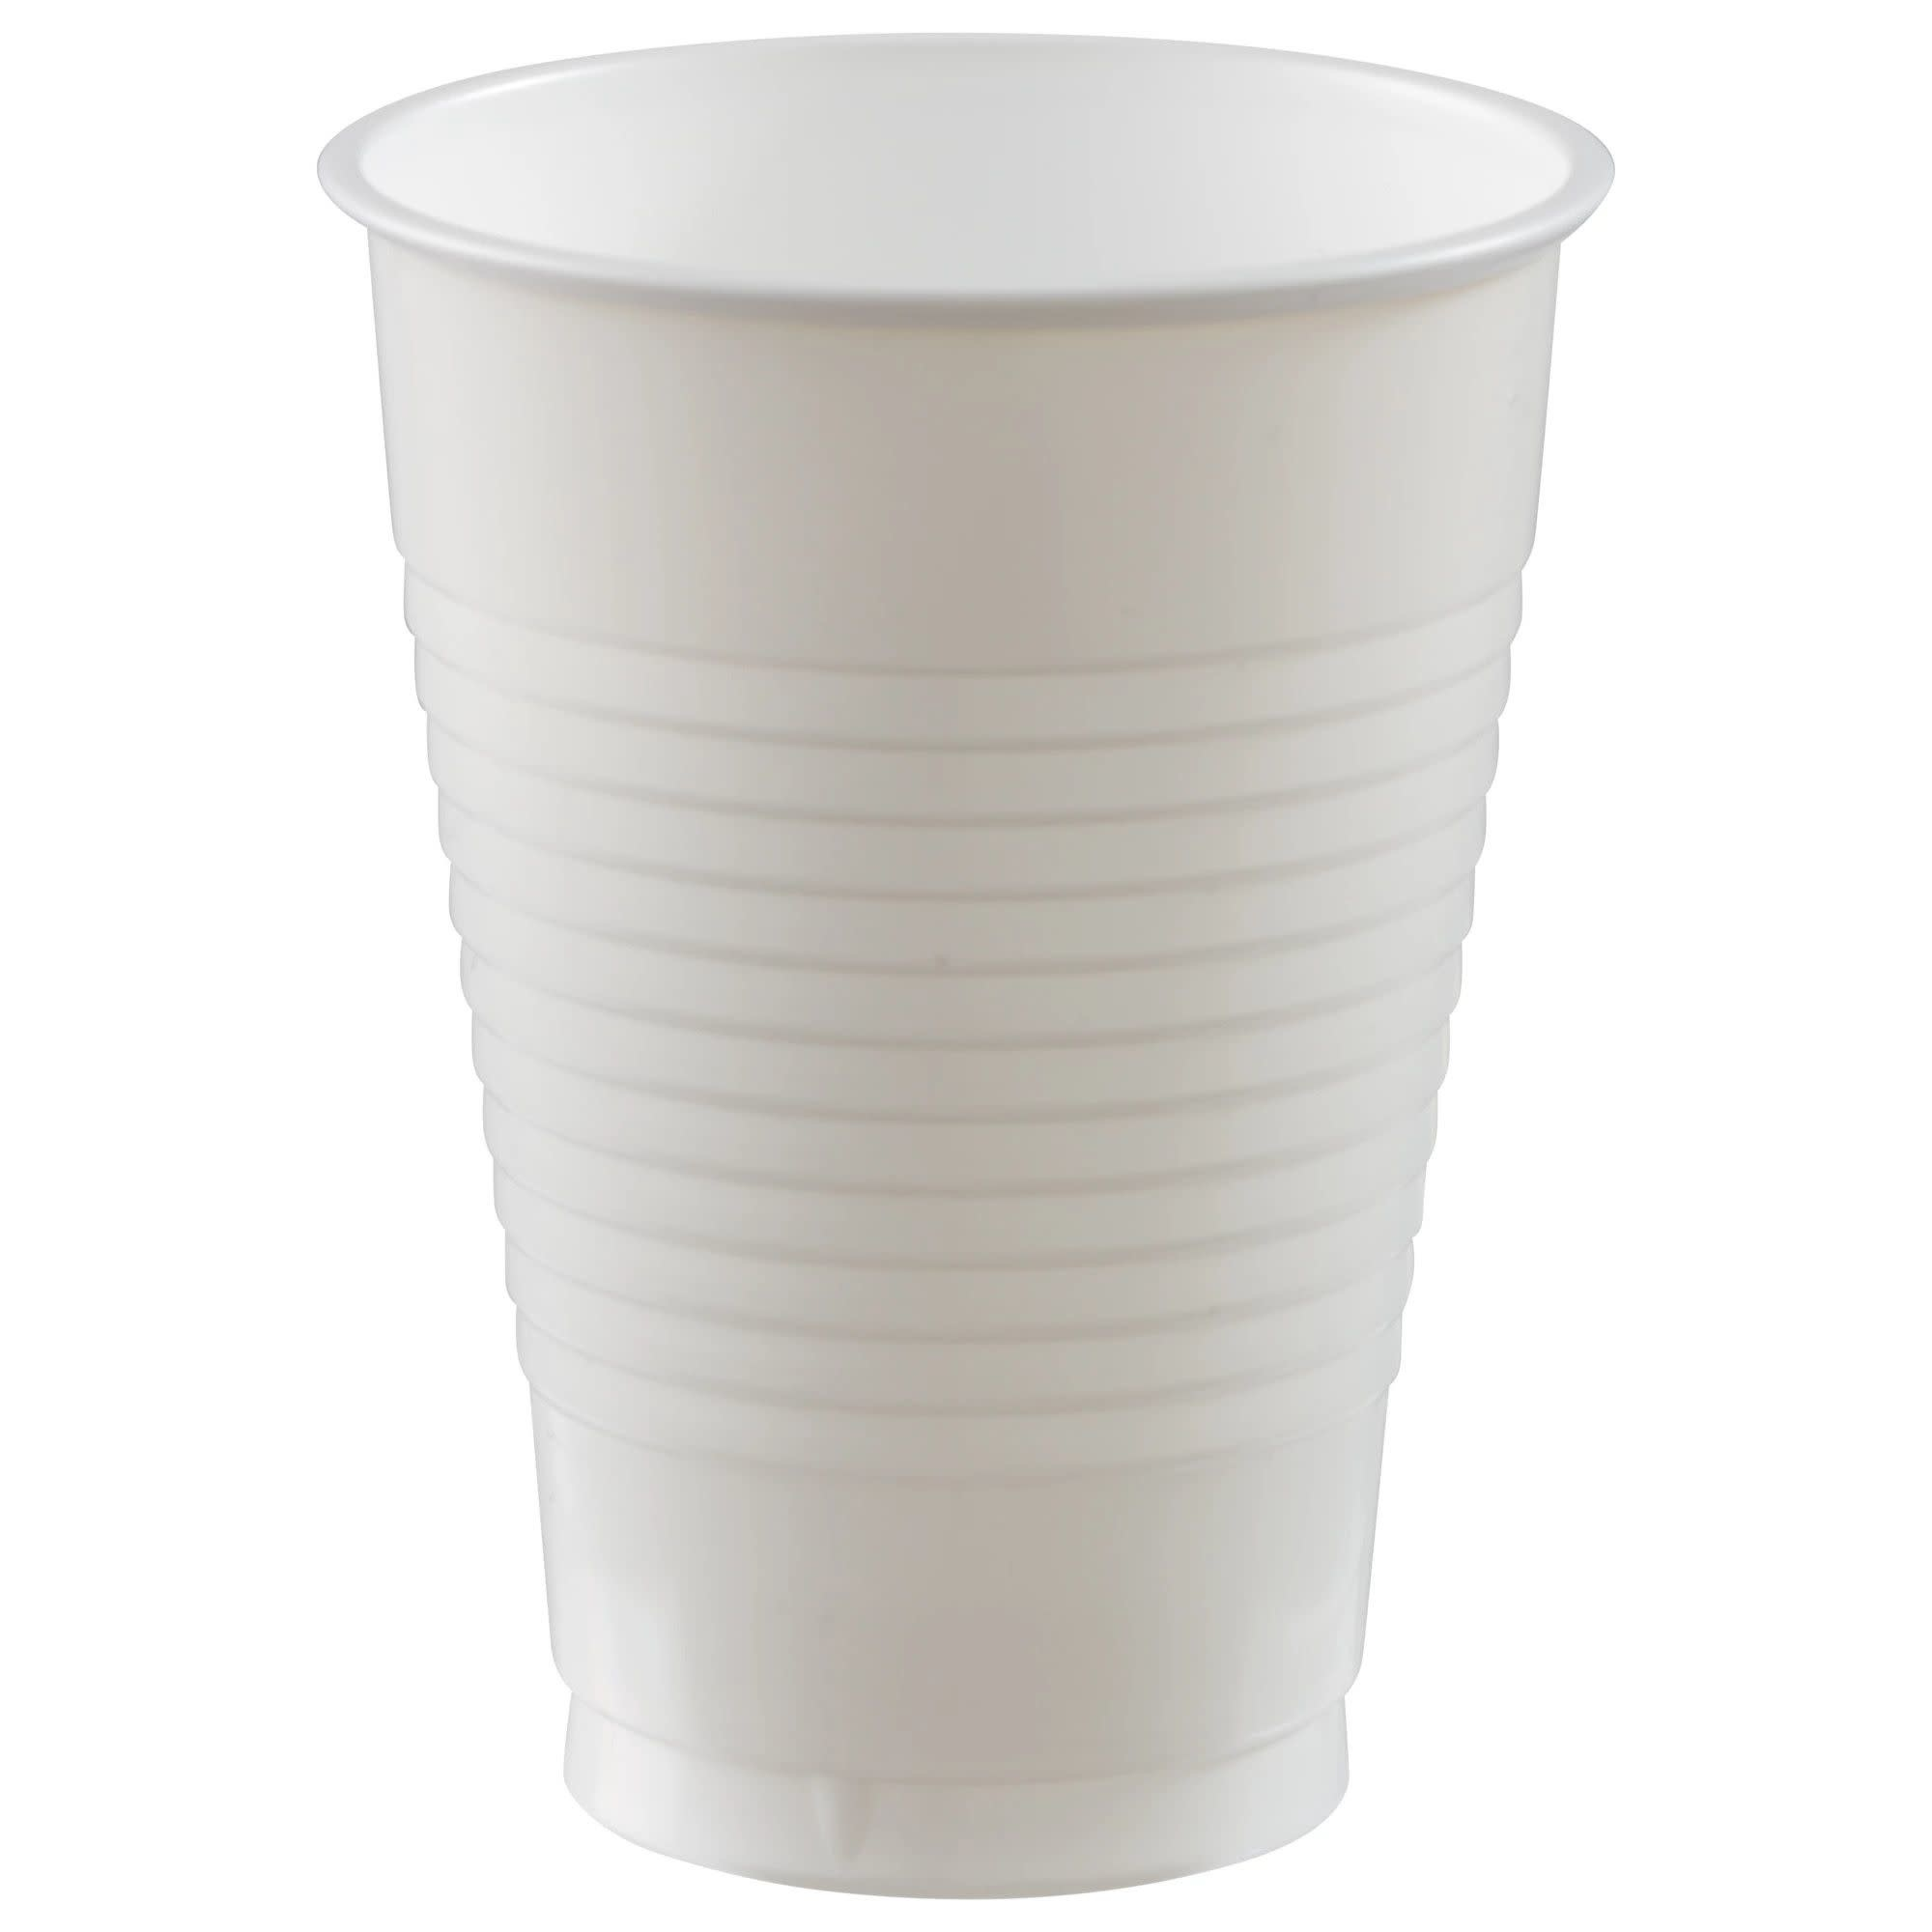 12 Oz. Plastic Cups, Mid Ct. - Frosty White